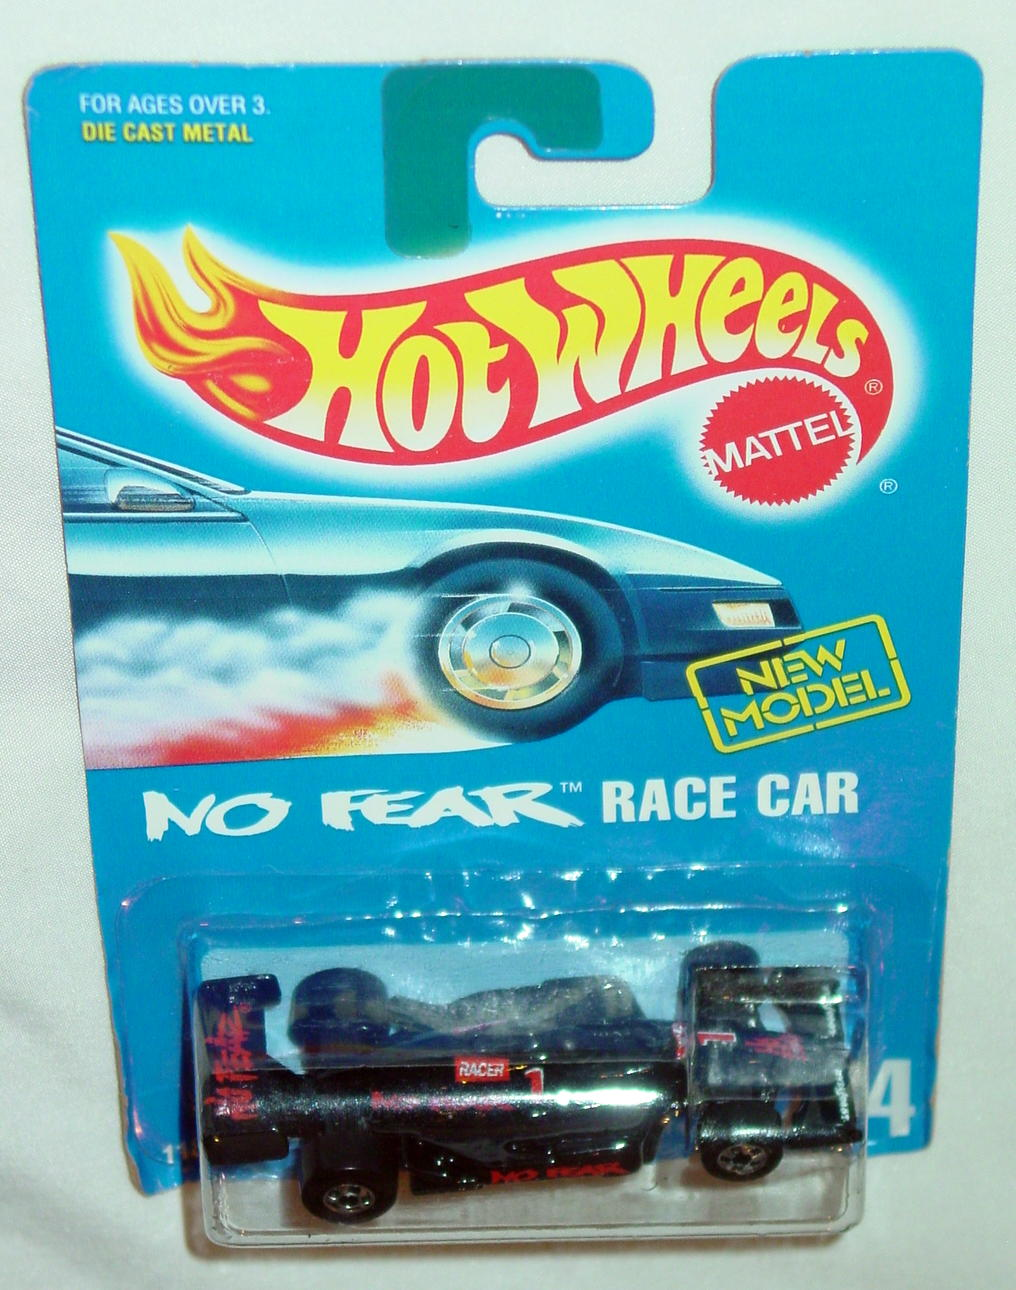 Blackwalls 11846 - 244 No Fear Racer Black black wheels NEW MODEL C9